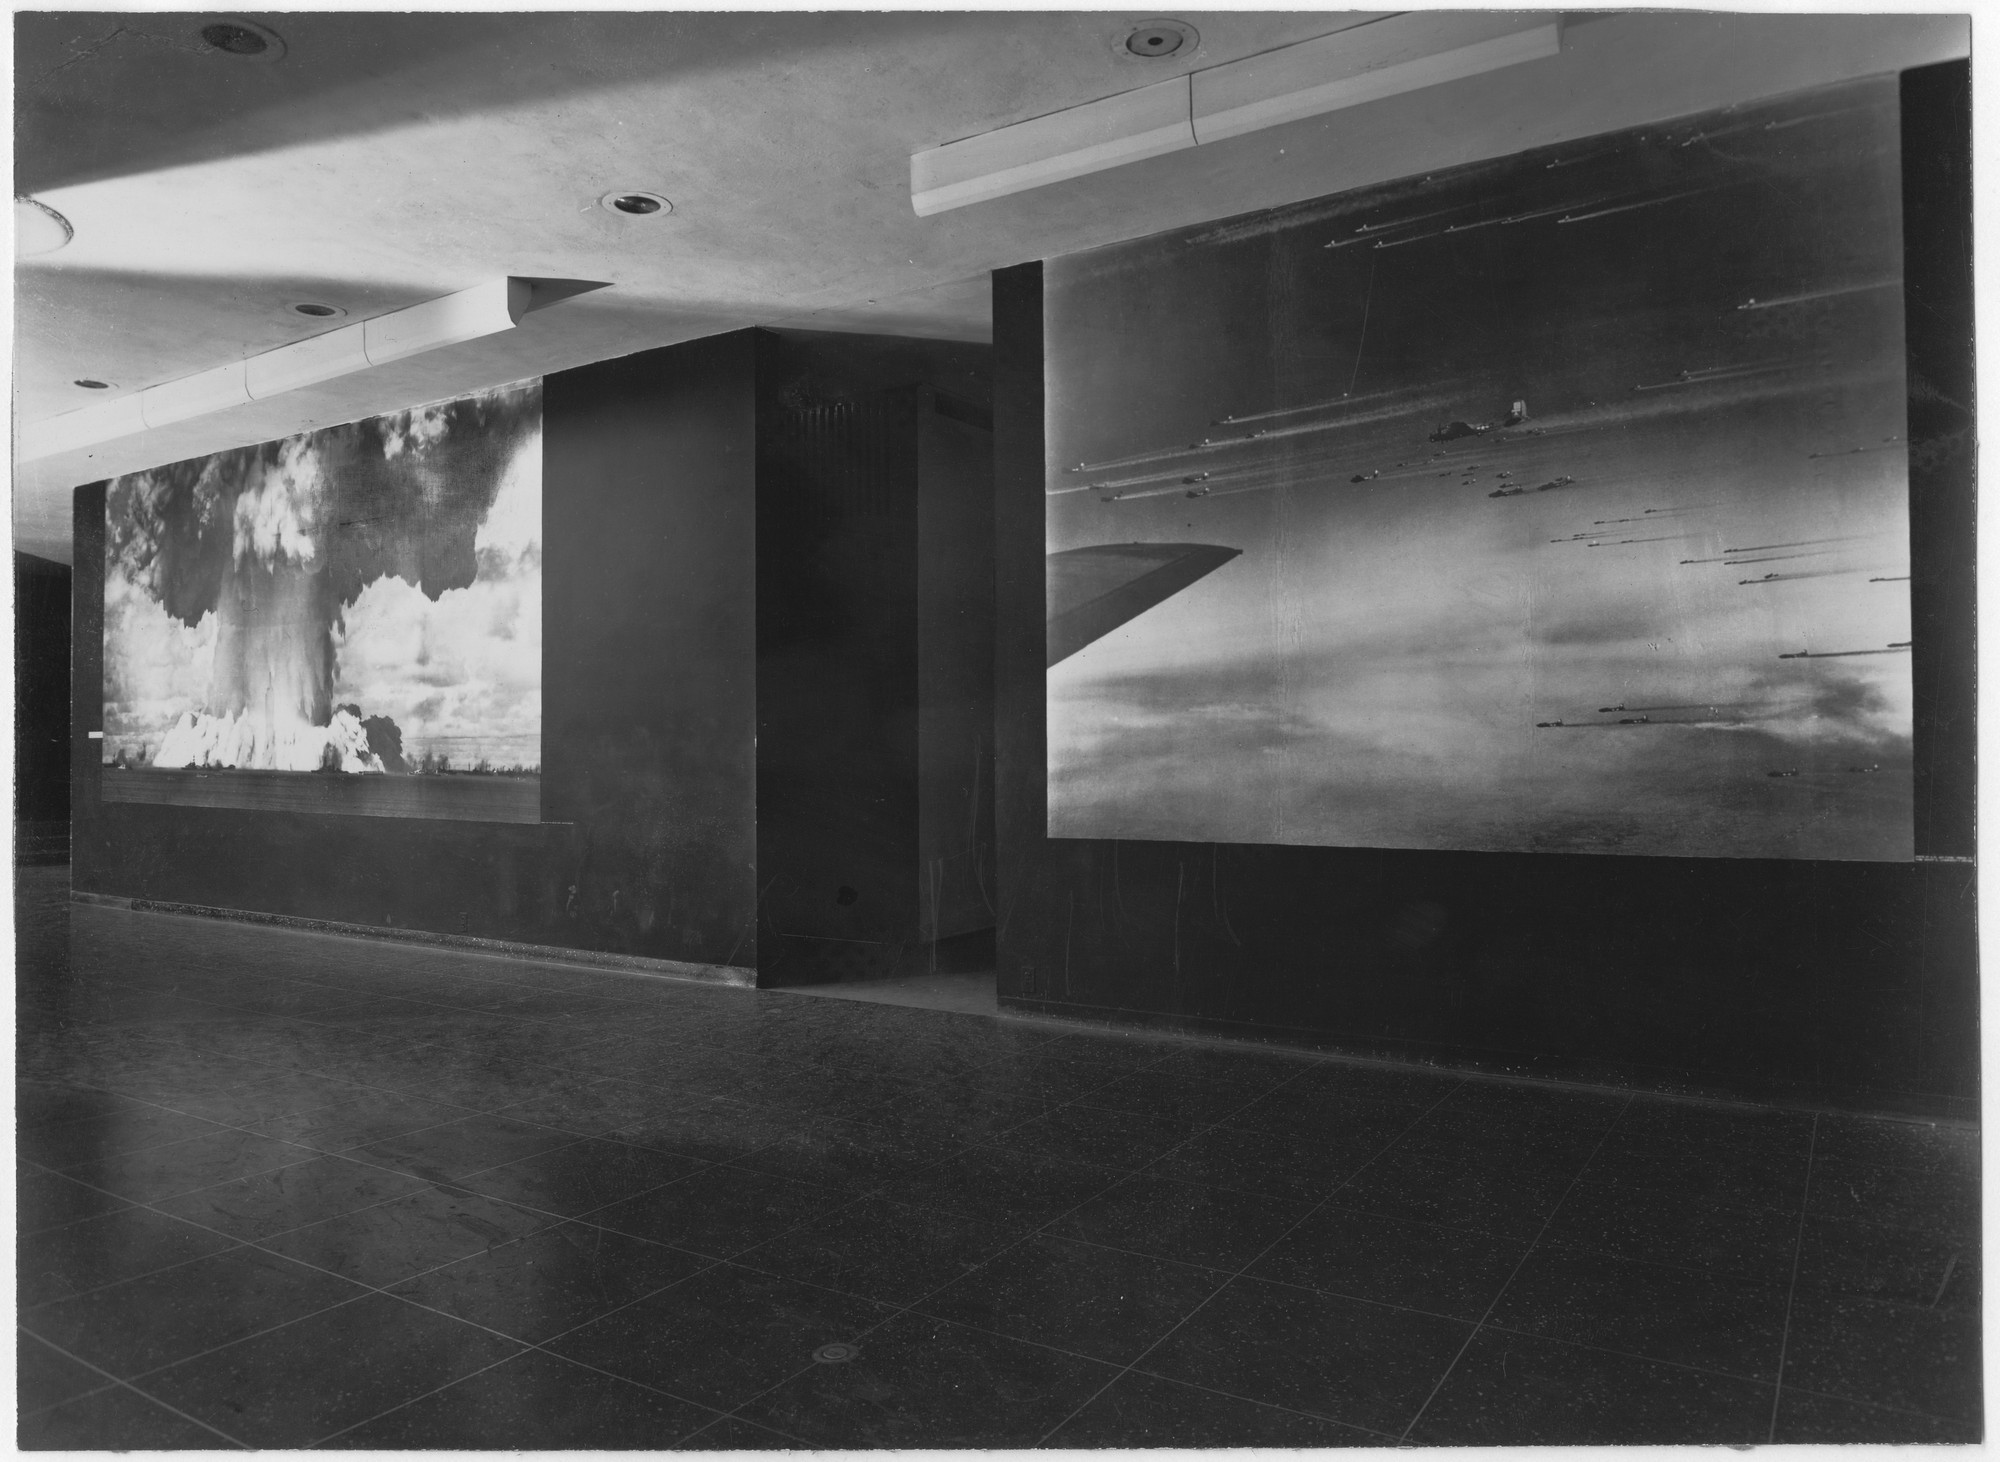 "Installation view of the exhibition, ""The Exact Instant."" February 8, 1949–May 1, 1949. Photographic Archive. The Museum of Modern Art Archives, New York. IN399.1. Photograph by Soichi Sunami."